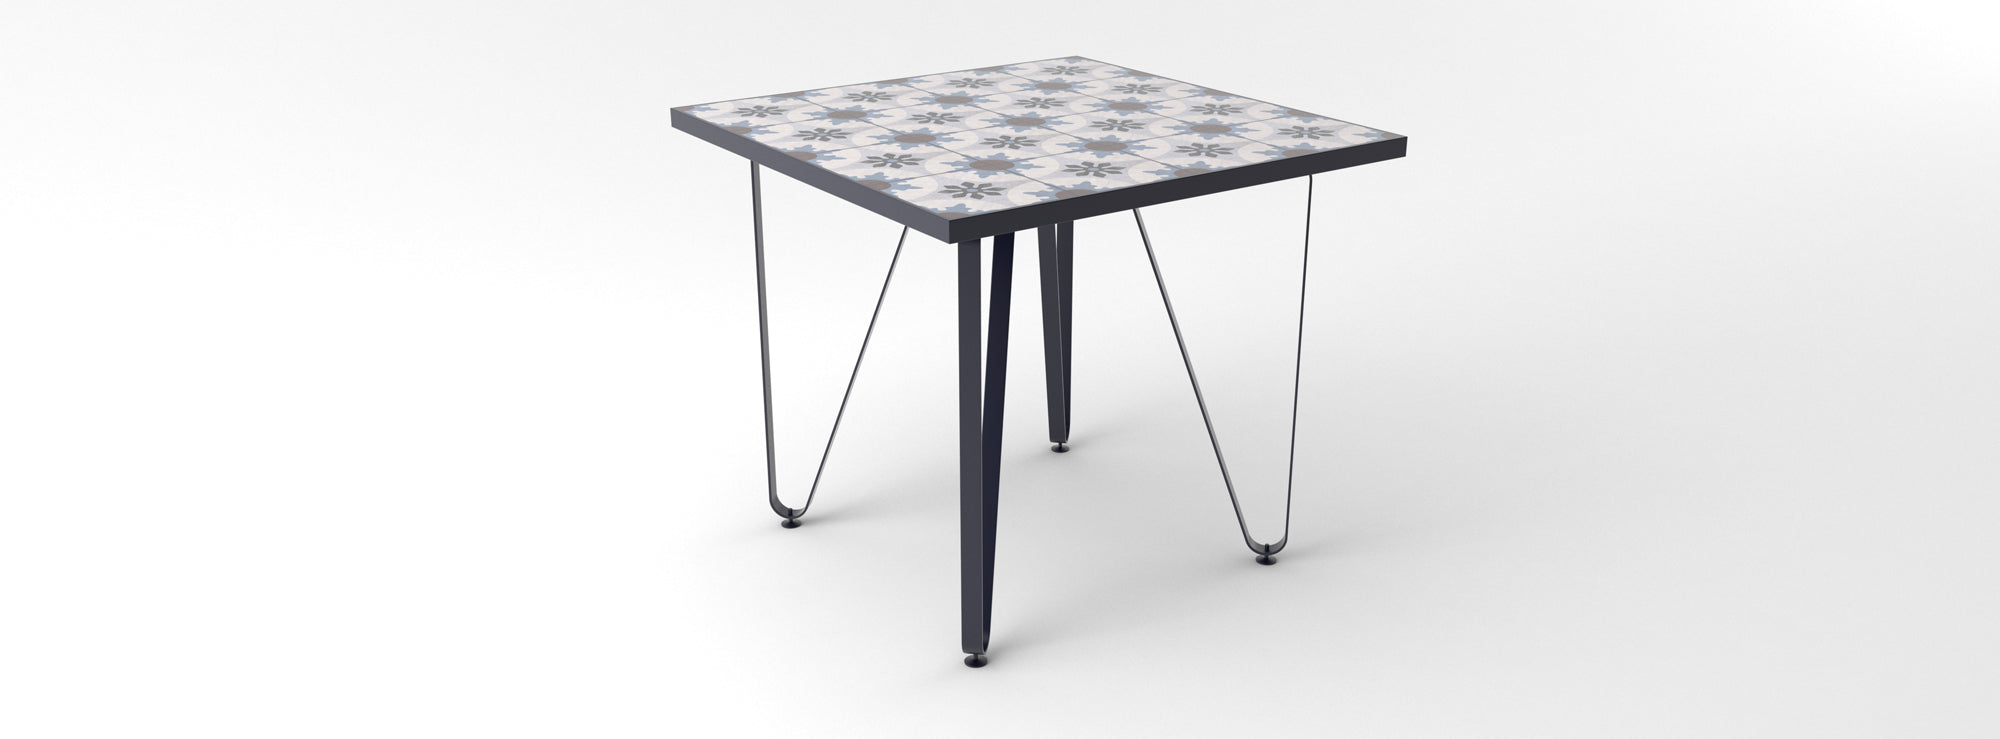 Ceramic tiled dining table with black legs and one-tiled-only fillings